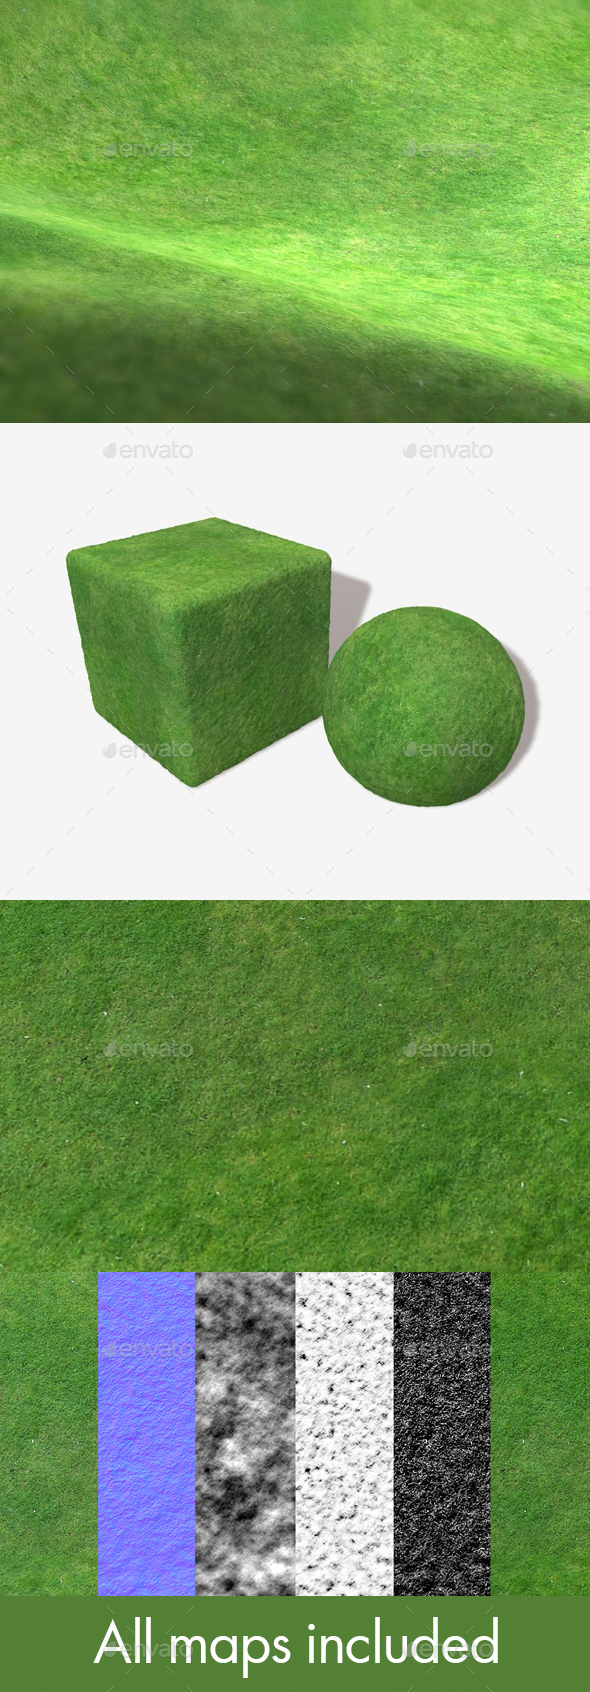 Grass From A High Angle Seamless Texture - 3DOcean Item for Sale